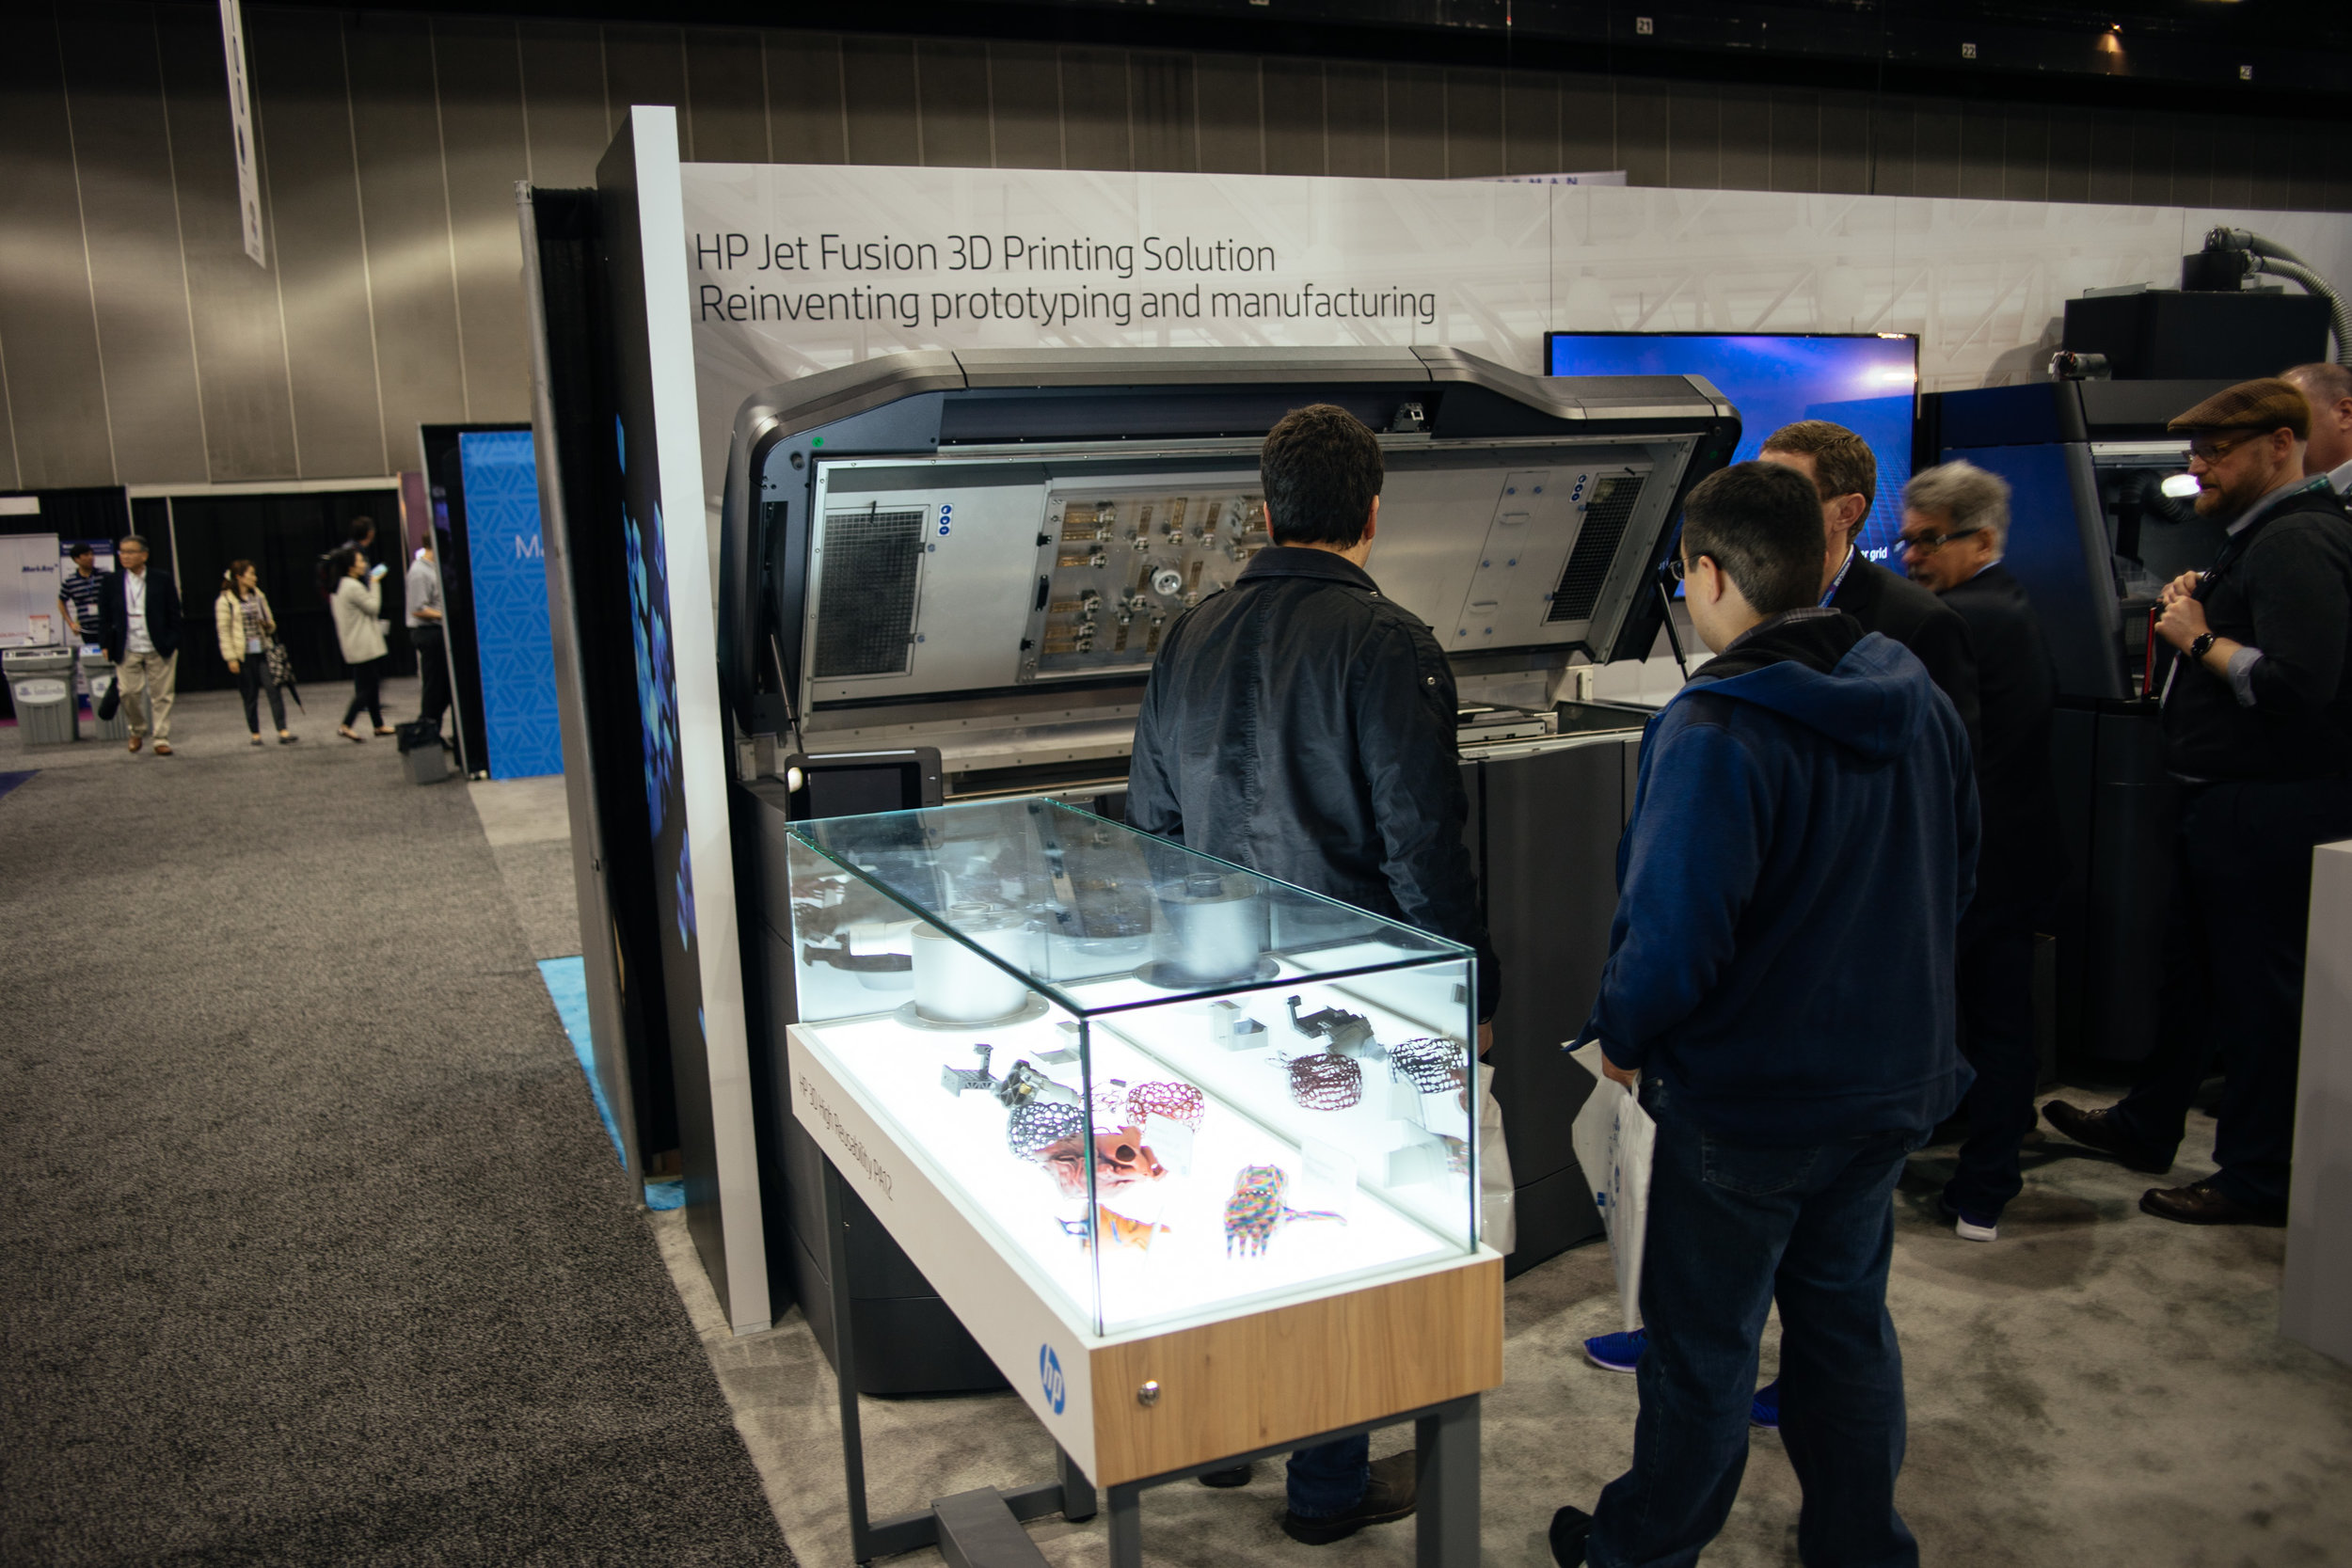 Finally got to see one of these HP 3D printers in person.We  really  want one of these in house.